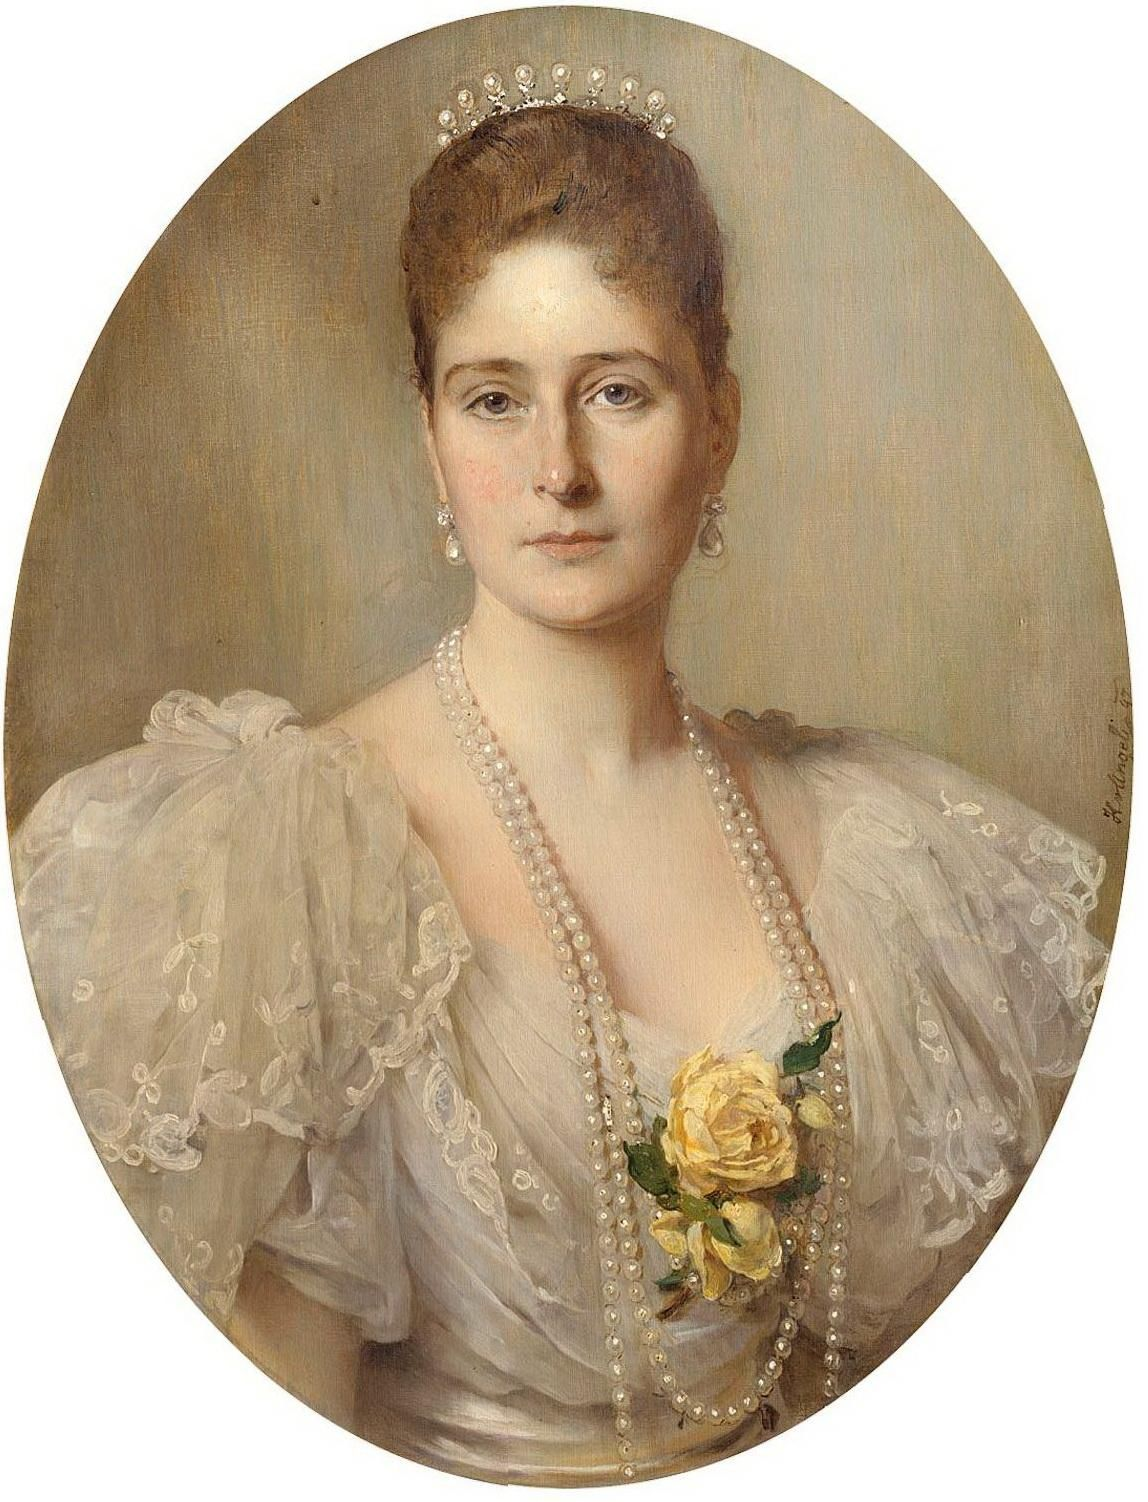 The Empress Alexandra Feodorovna Of Russia Was Born On This Day, 6th June  1872 To